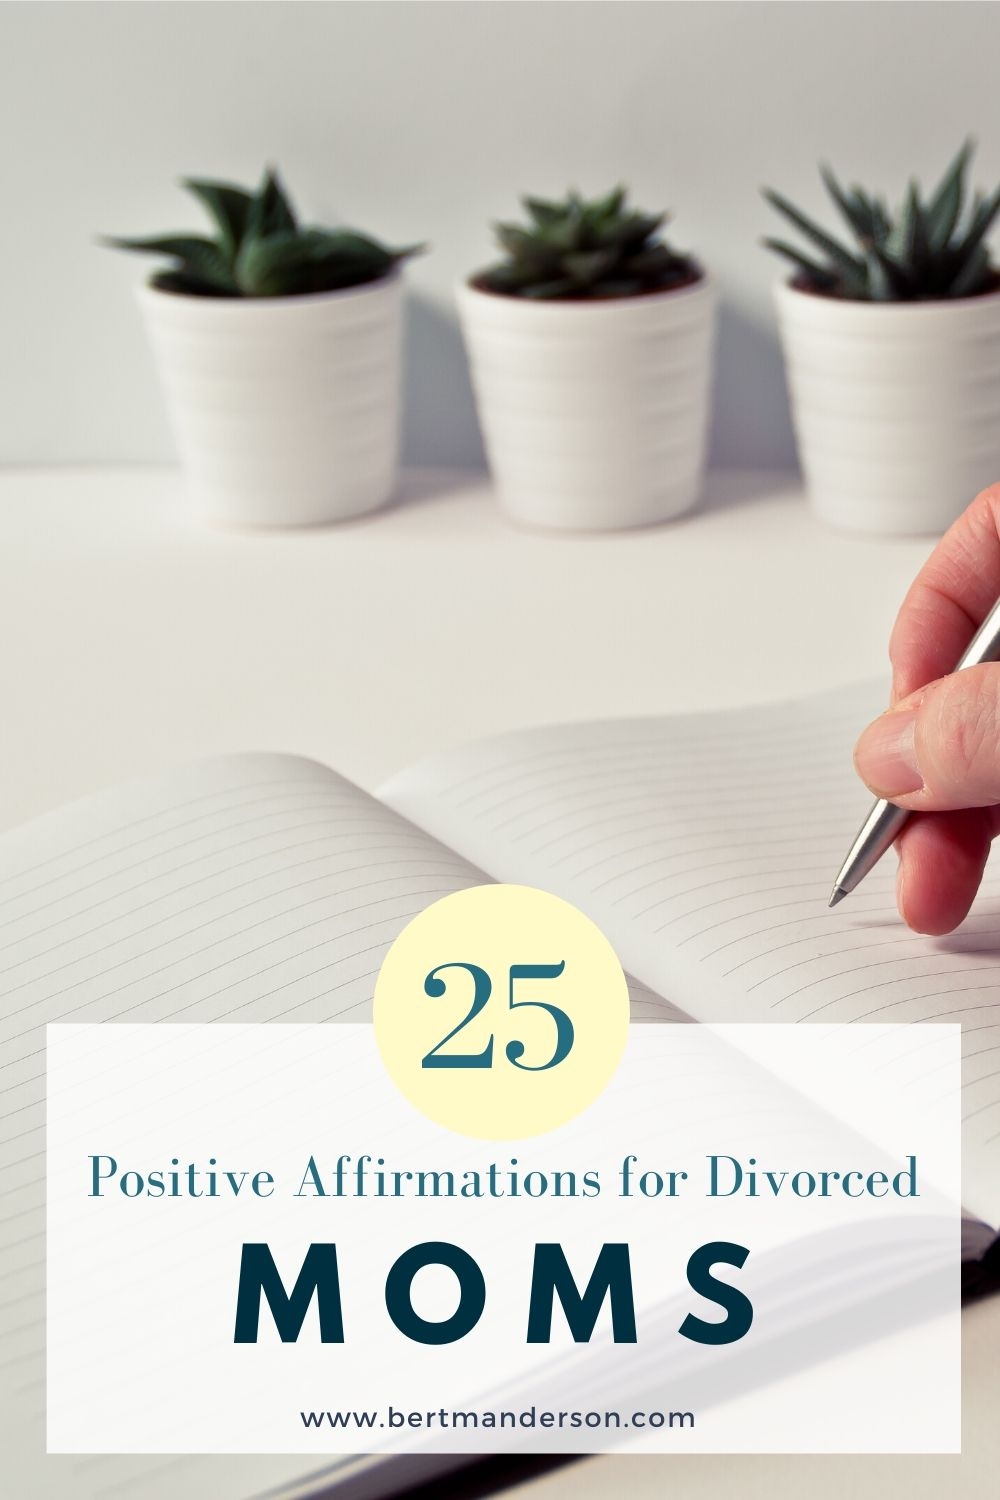 25 Positive Affirmations for moms who are going through a divorce. #quotes #affirmations #singlemomselfcare #mentalhealth